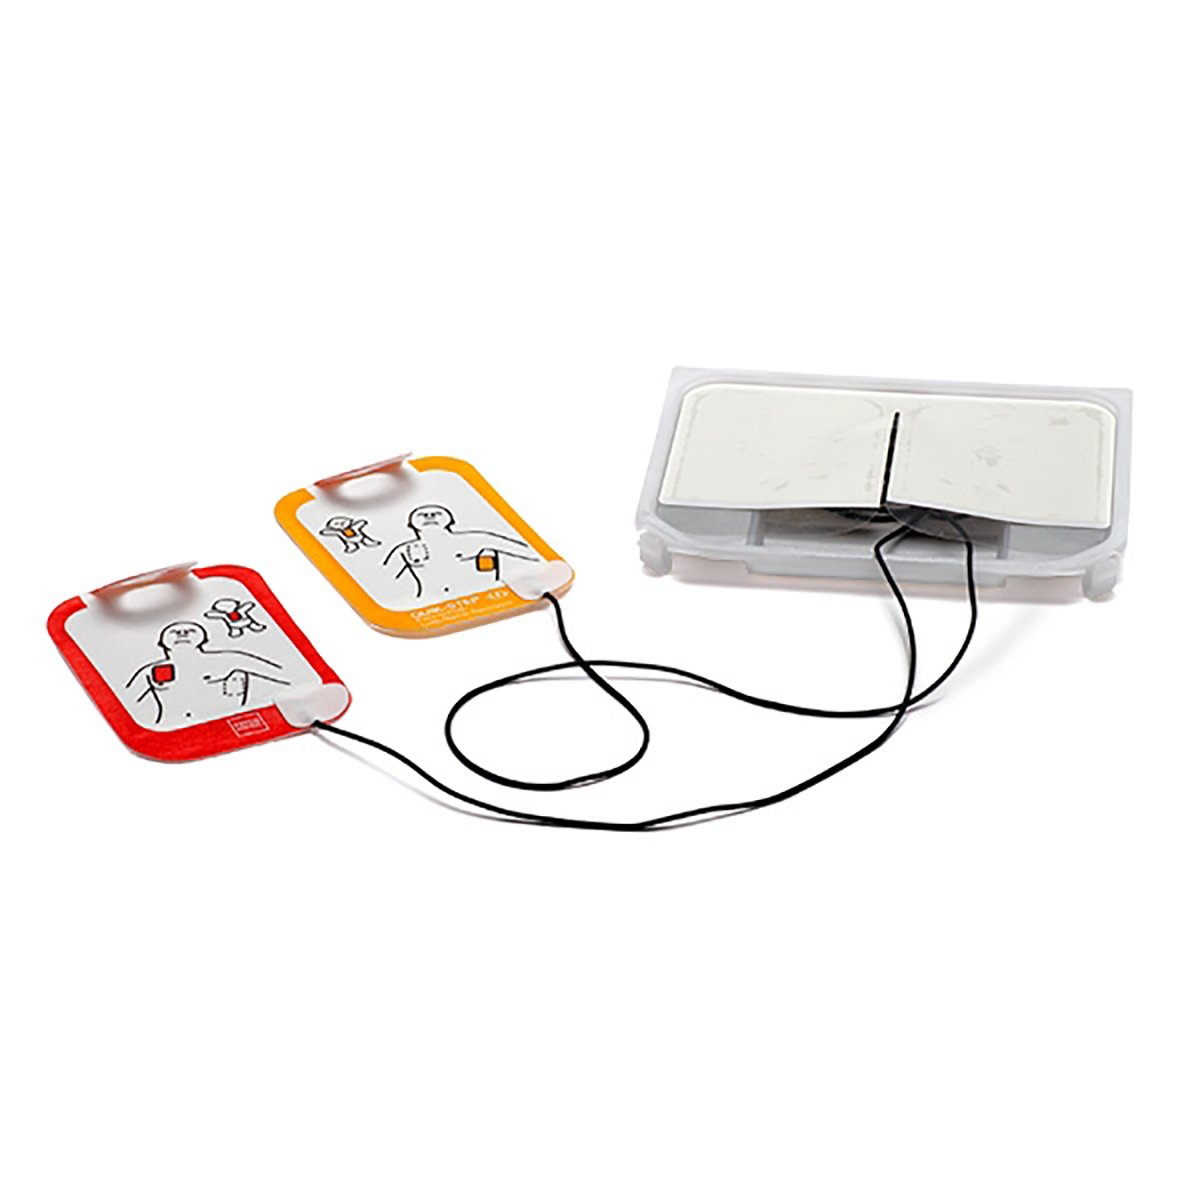 Physio-Control Lifepak® CR2 Replacement Electrode Kit